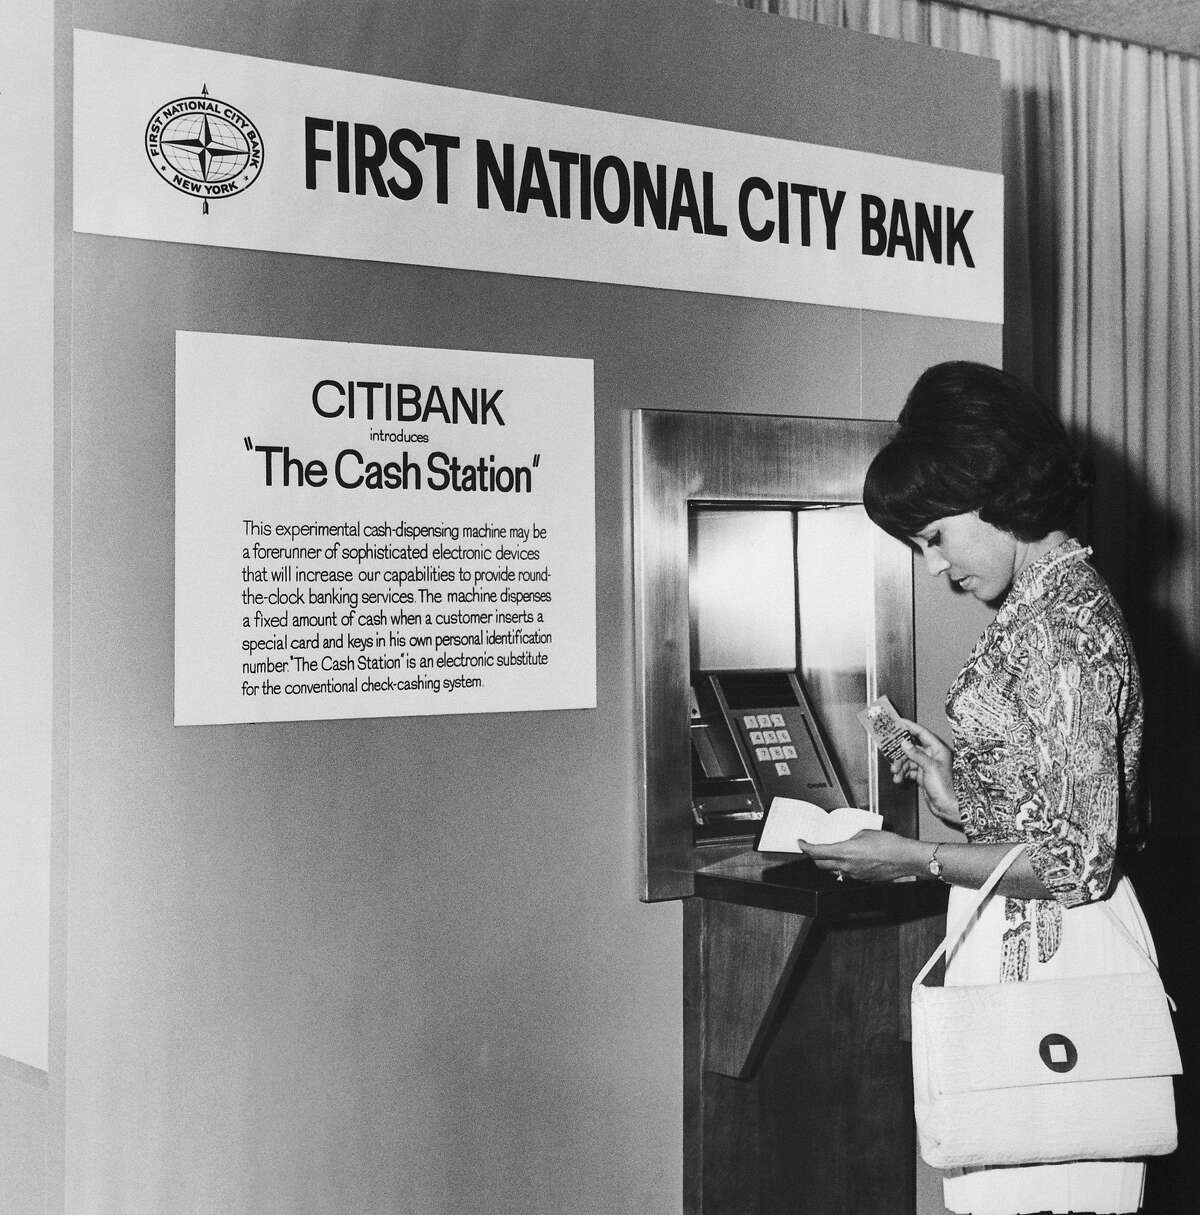 """(Original Caption) New York: A machine that, in effect, cashes checks around the clock will be put in use on an experimental basis at the headquarters of first national city bank Tuesday. The bank said it could revolutionize banking services. The bank calls it """"The Cash Station"""" because it pays out cash without the intervention of a teller. The depositor inserts a special card in a slot in the machine and at the same time keys in a confidential identification number. The machine dispenses a fixed amount of cash and records the transaction, retaining the card which is returned to the depositor with his monthly statement. Charles F. Hayward, a citibank vice-president, said the machine, made by a British firm, Chubb & Sons, is virtually temperproof. It is already being used successfully in England. Hayward said the bank would test the machine thoroughly before making any plans to inst"""